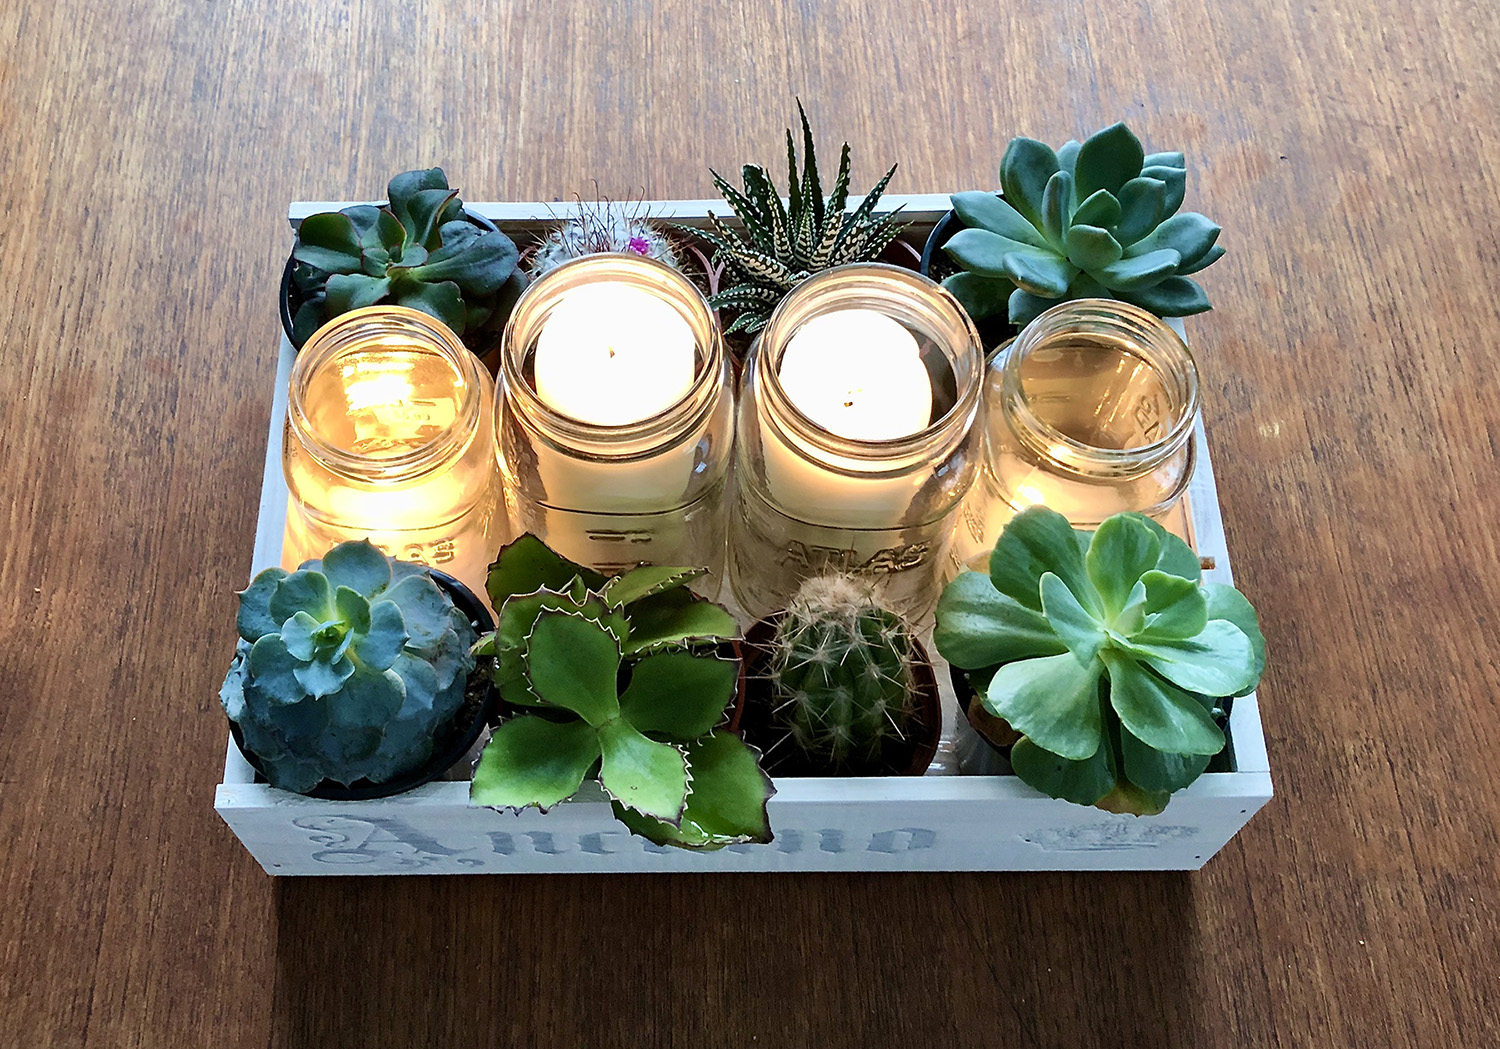 Table centrepiece with succulents and candles